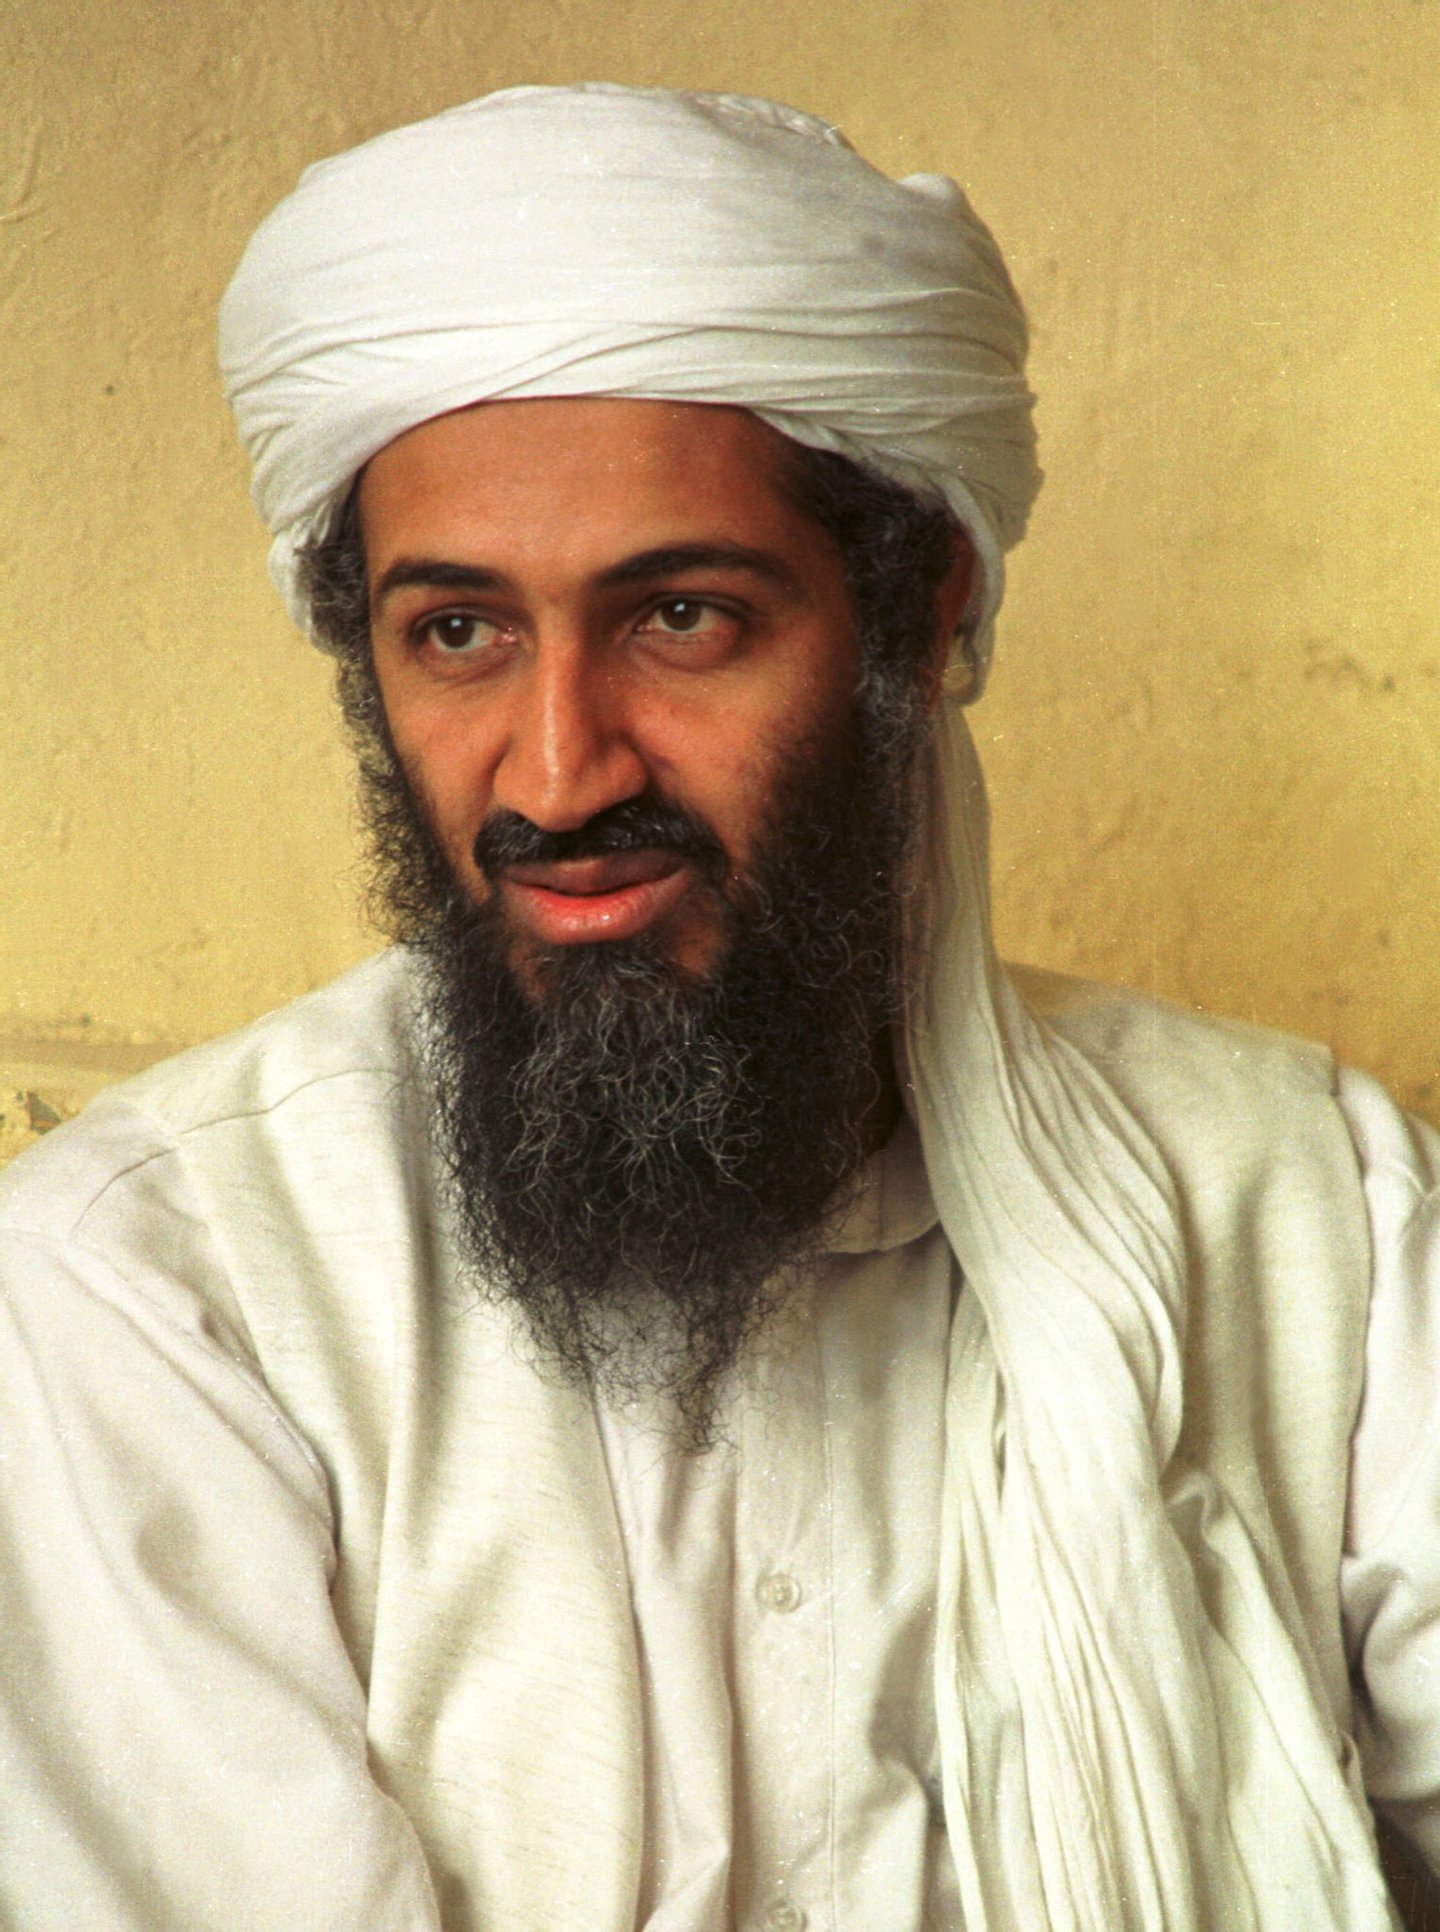 "395617 01: (FILE PHOTO) Saudi dissident Osama bin Laden in an undated photo. October 10, 2001. Afghanistan's ruling Taliban lifted restrictions on Bin Laden, giving him permission to conduct ""Jihad,"" or holy war, against Afghanistan's enemies. (Photo by Getty Images)"